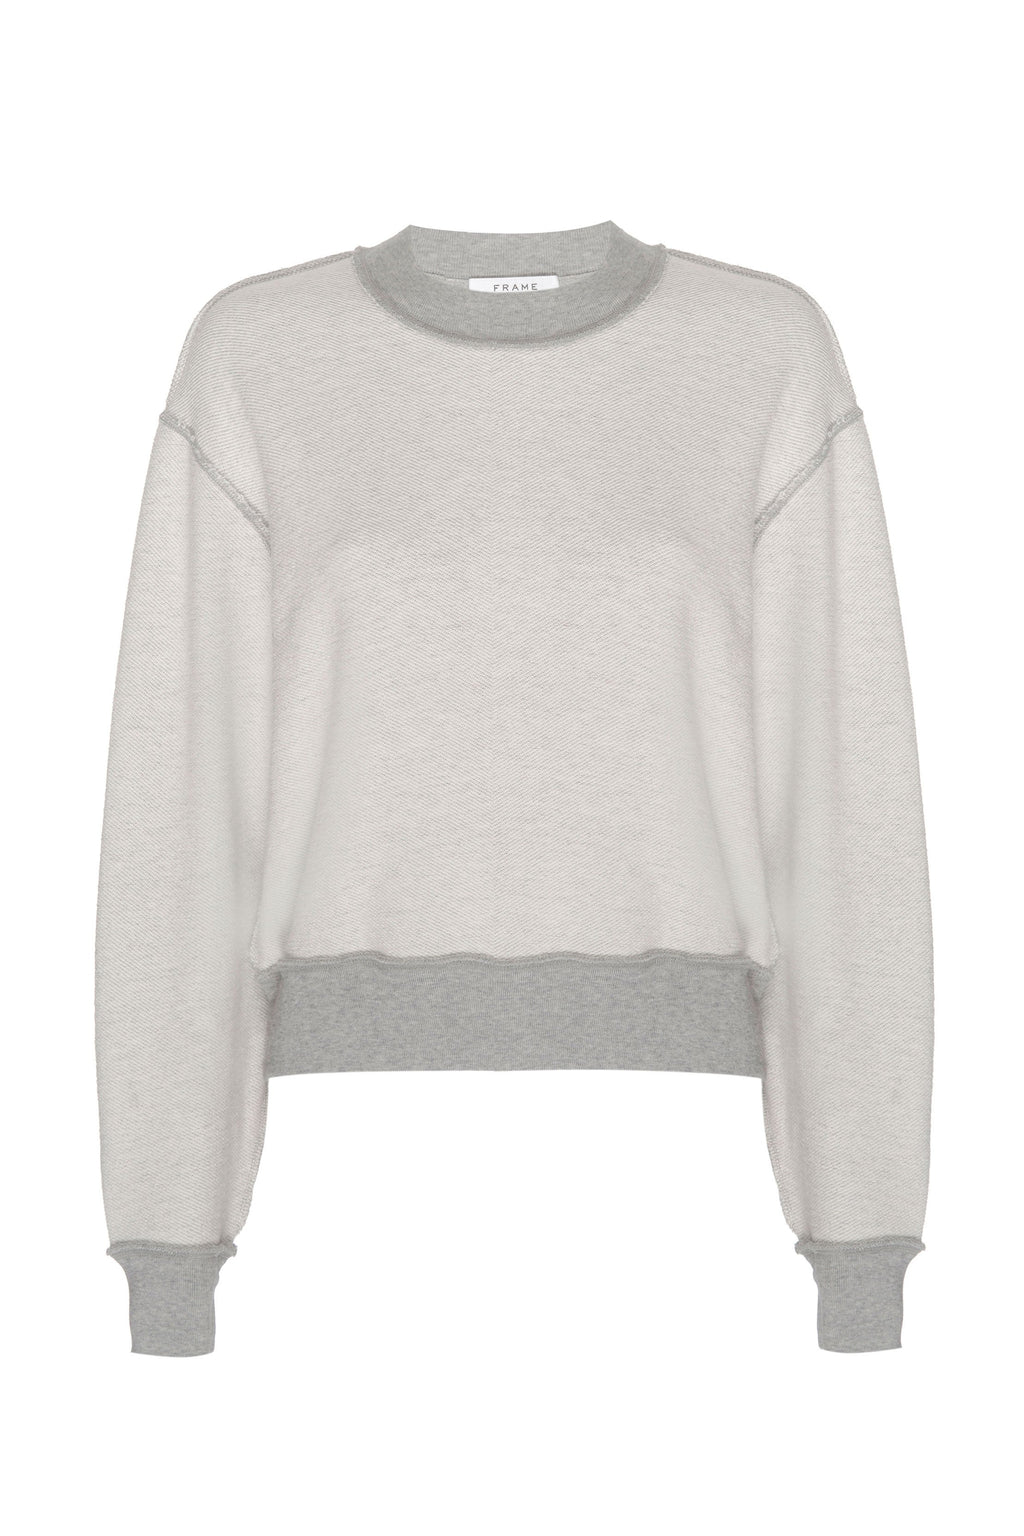 FRAME | Inverse Easy Sweatshirt - Gris Heather